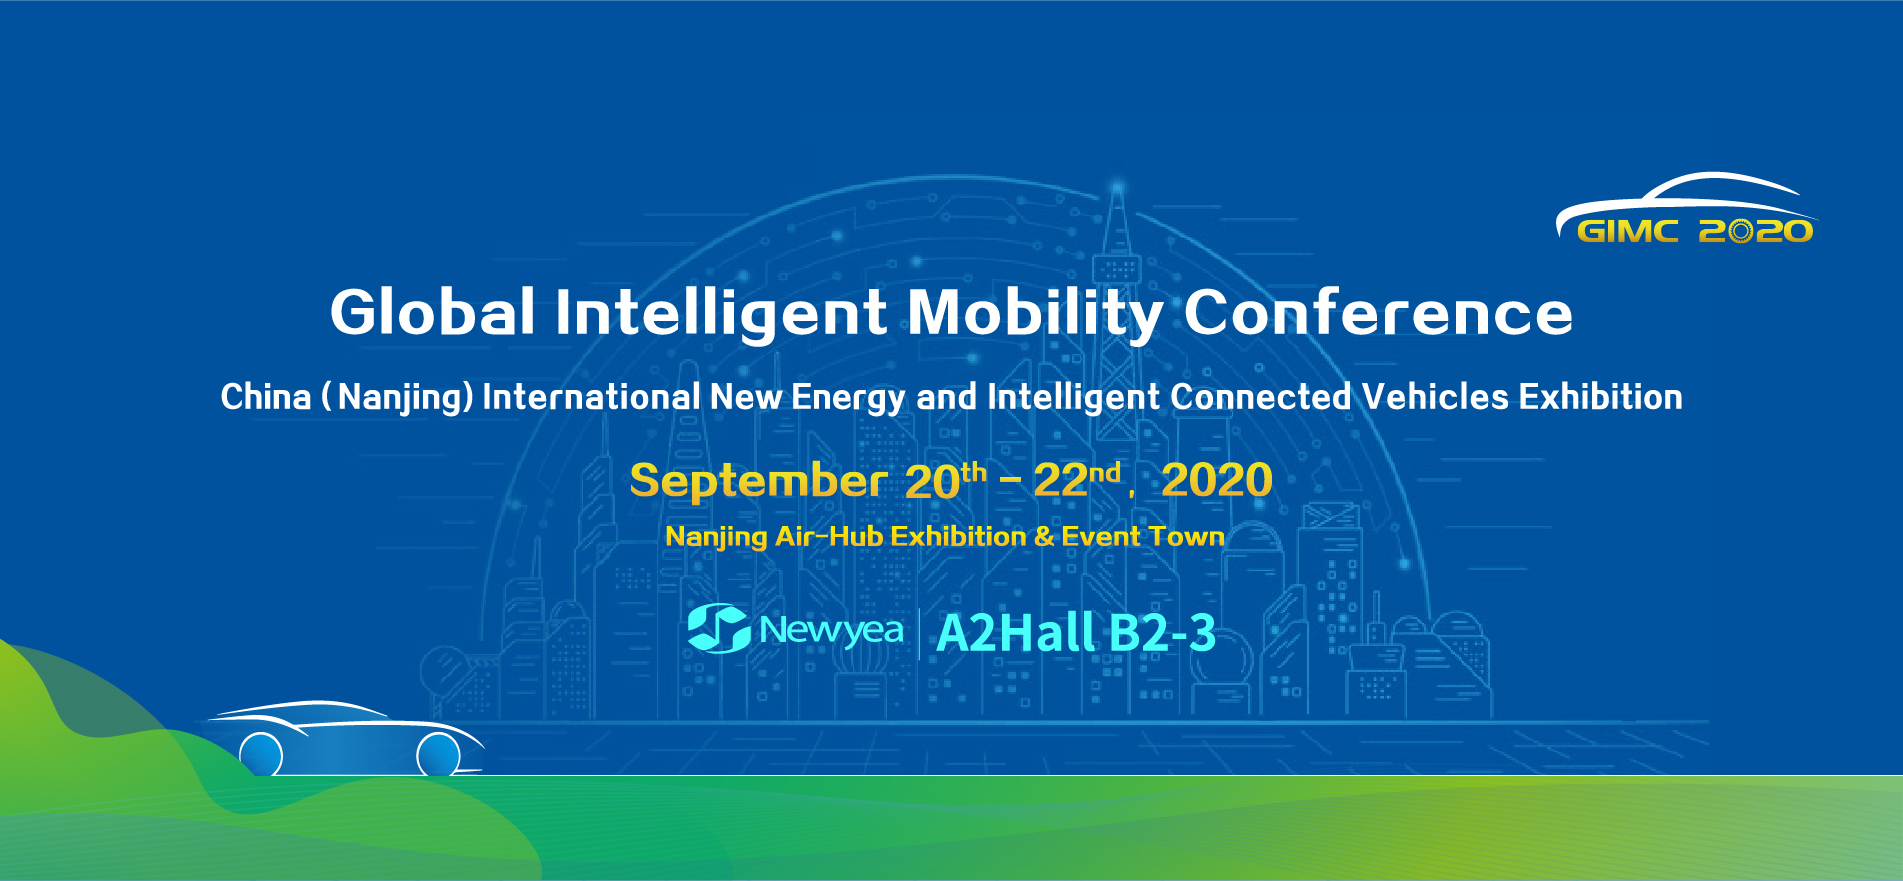 Global Intelligent Mobility Conference